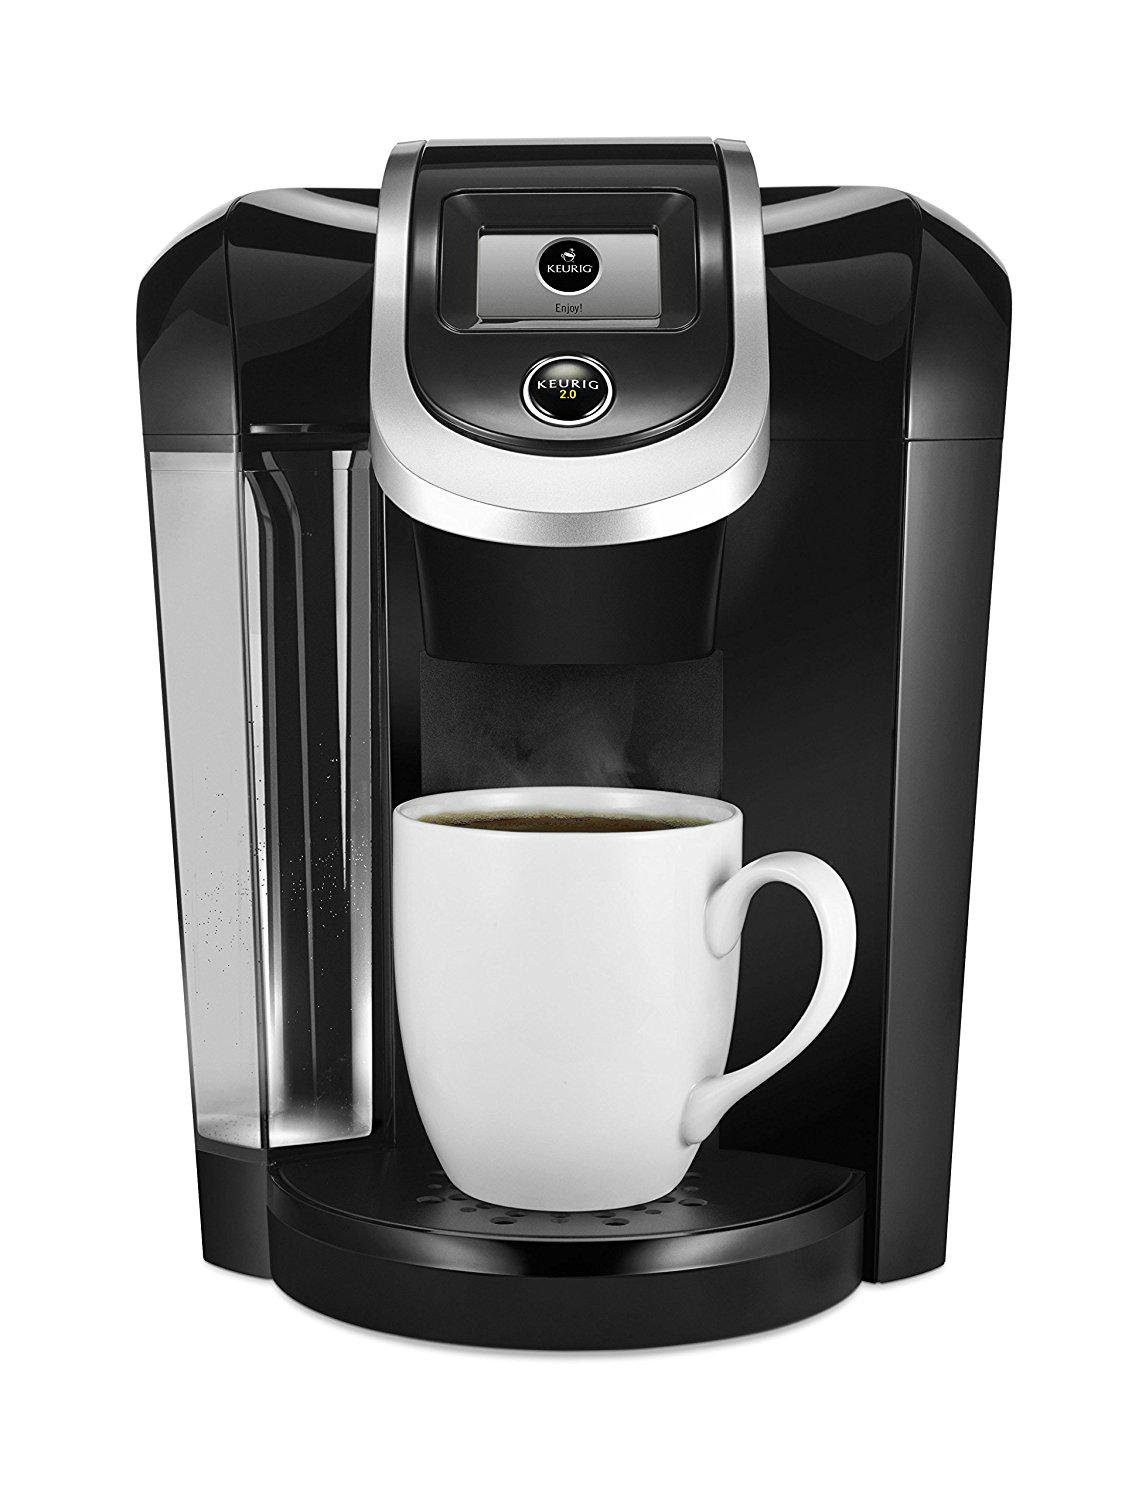 Keurig K300/K350 2.0 Coffee Maker Brewing System - Exclusive Offer Includes 2.0 Carafe and 2.0 Brewer Maintenance Accessory - Capable to Brew K-Cup and K-Carafe Pods - Black